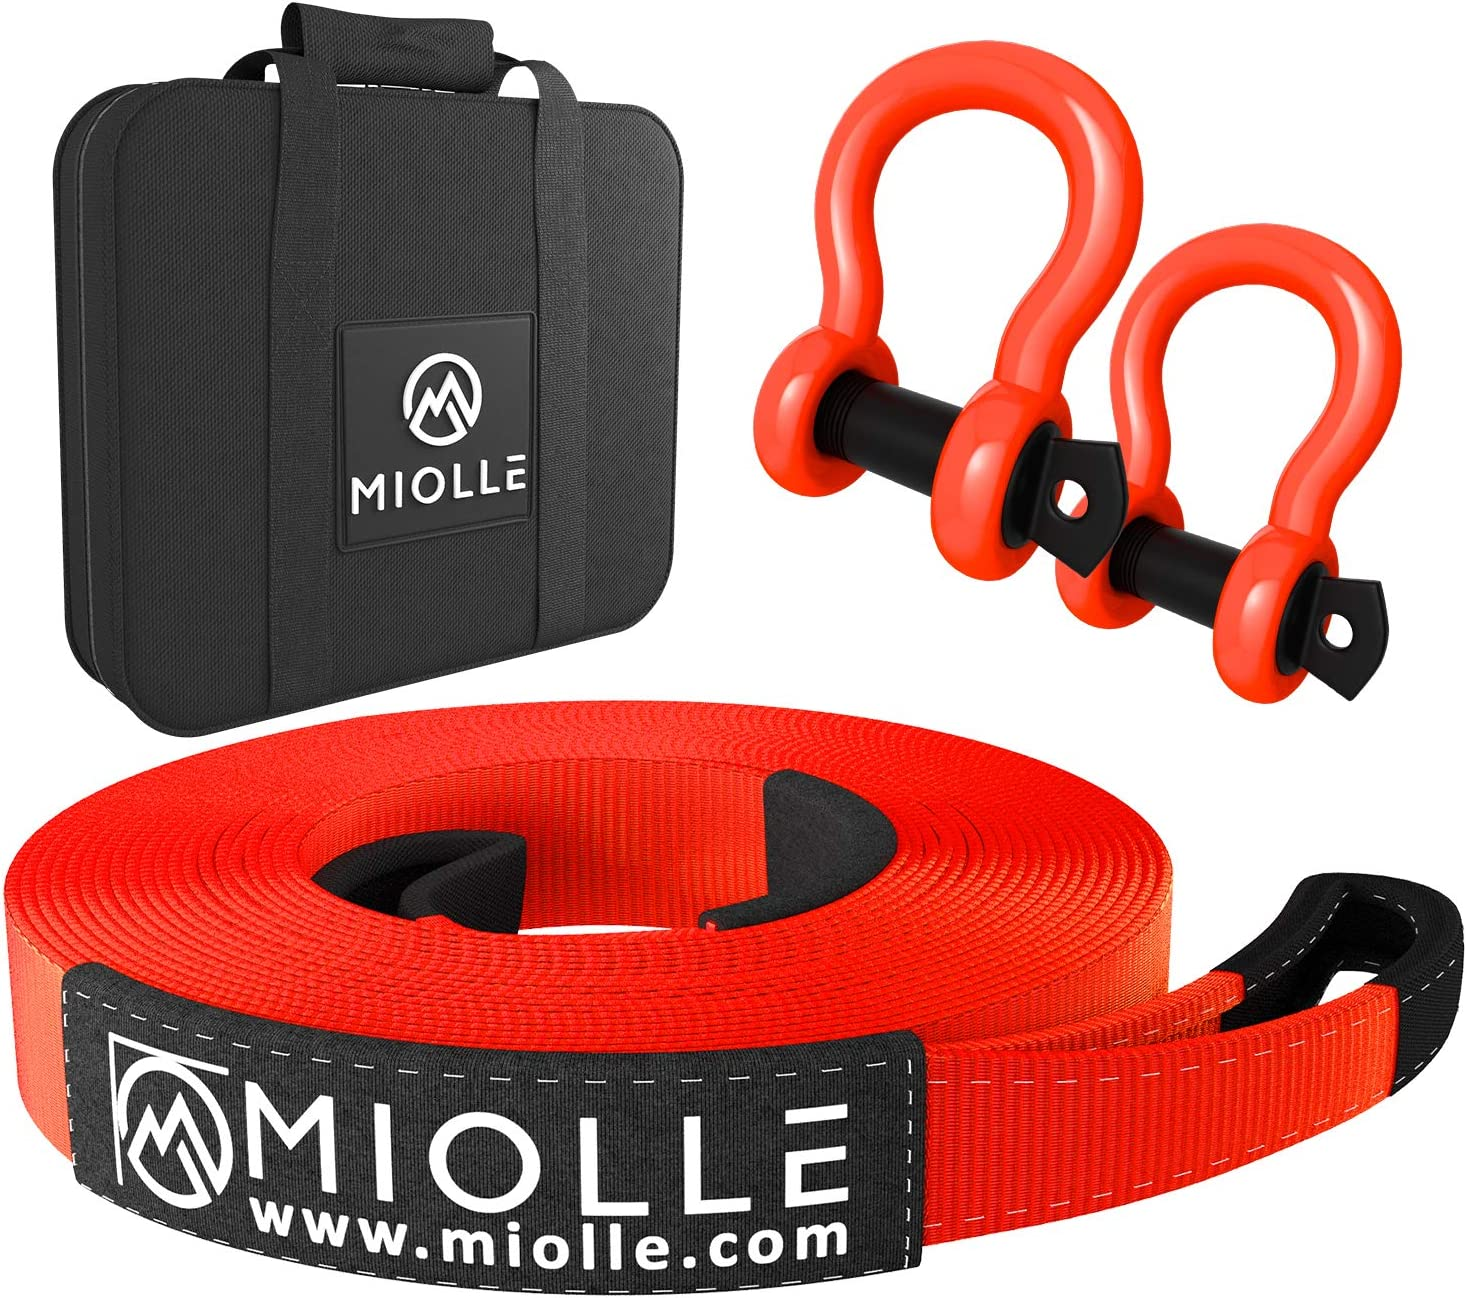 """Miolle High material Heavy Duty Tow Houston Mall Strap 2""""x20'- Lab MBS lbs 20990"""